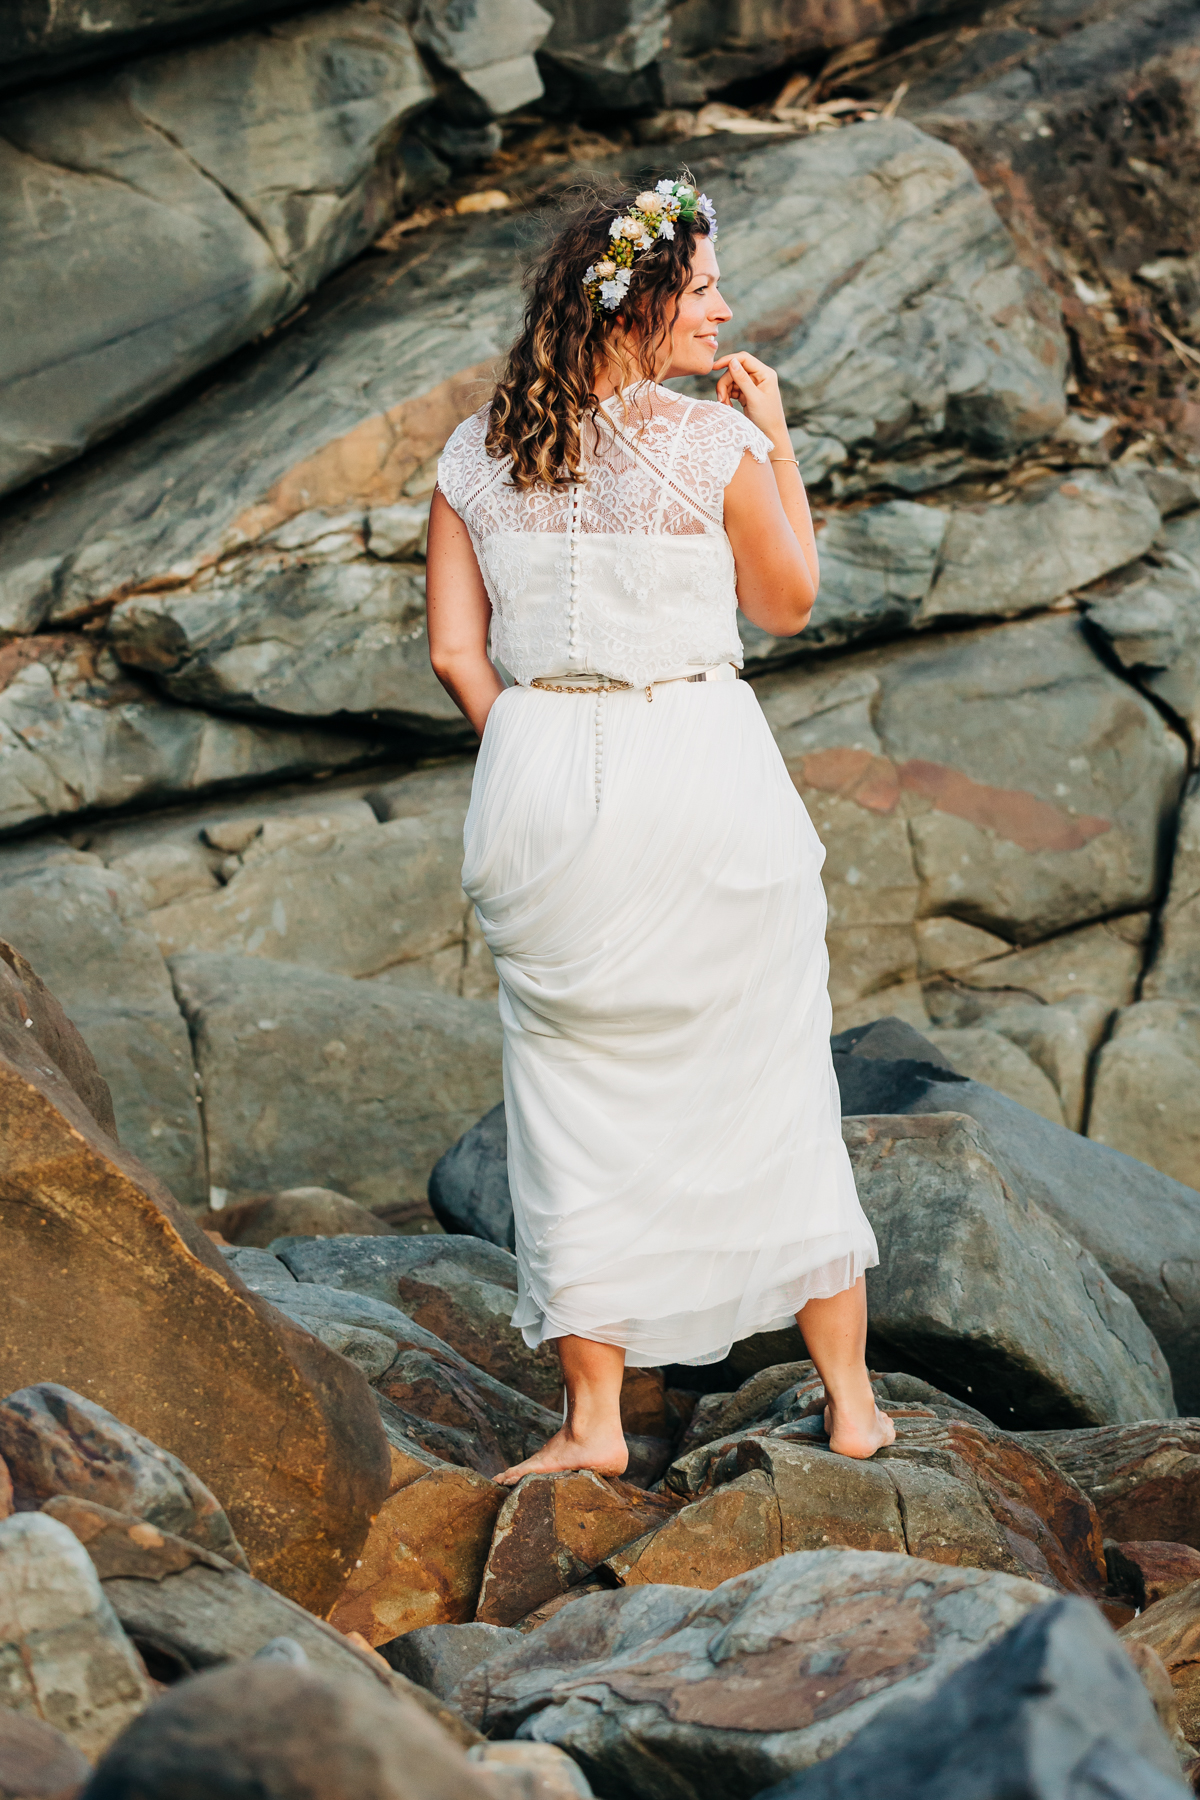 Sunshine-Beach-Wedding-Photographers-Lindy-Yewen 197.jpg